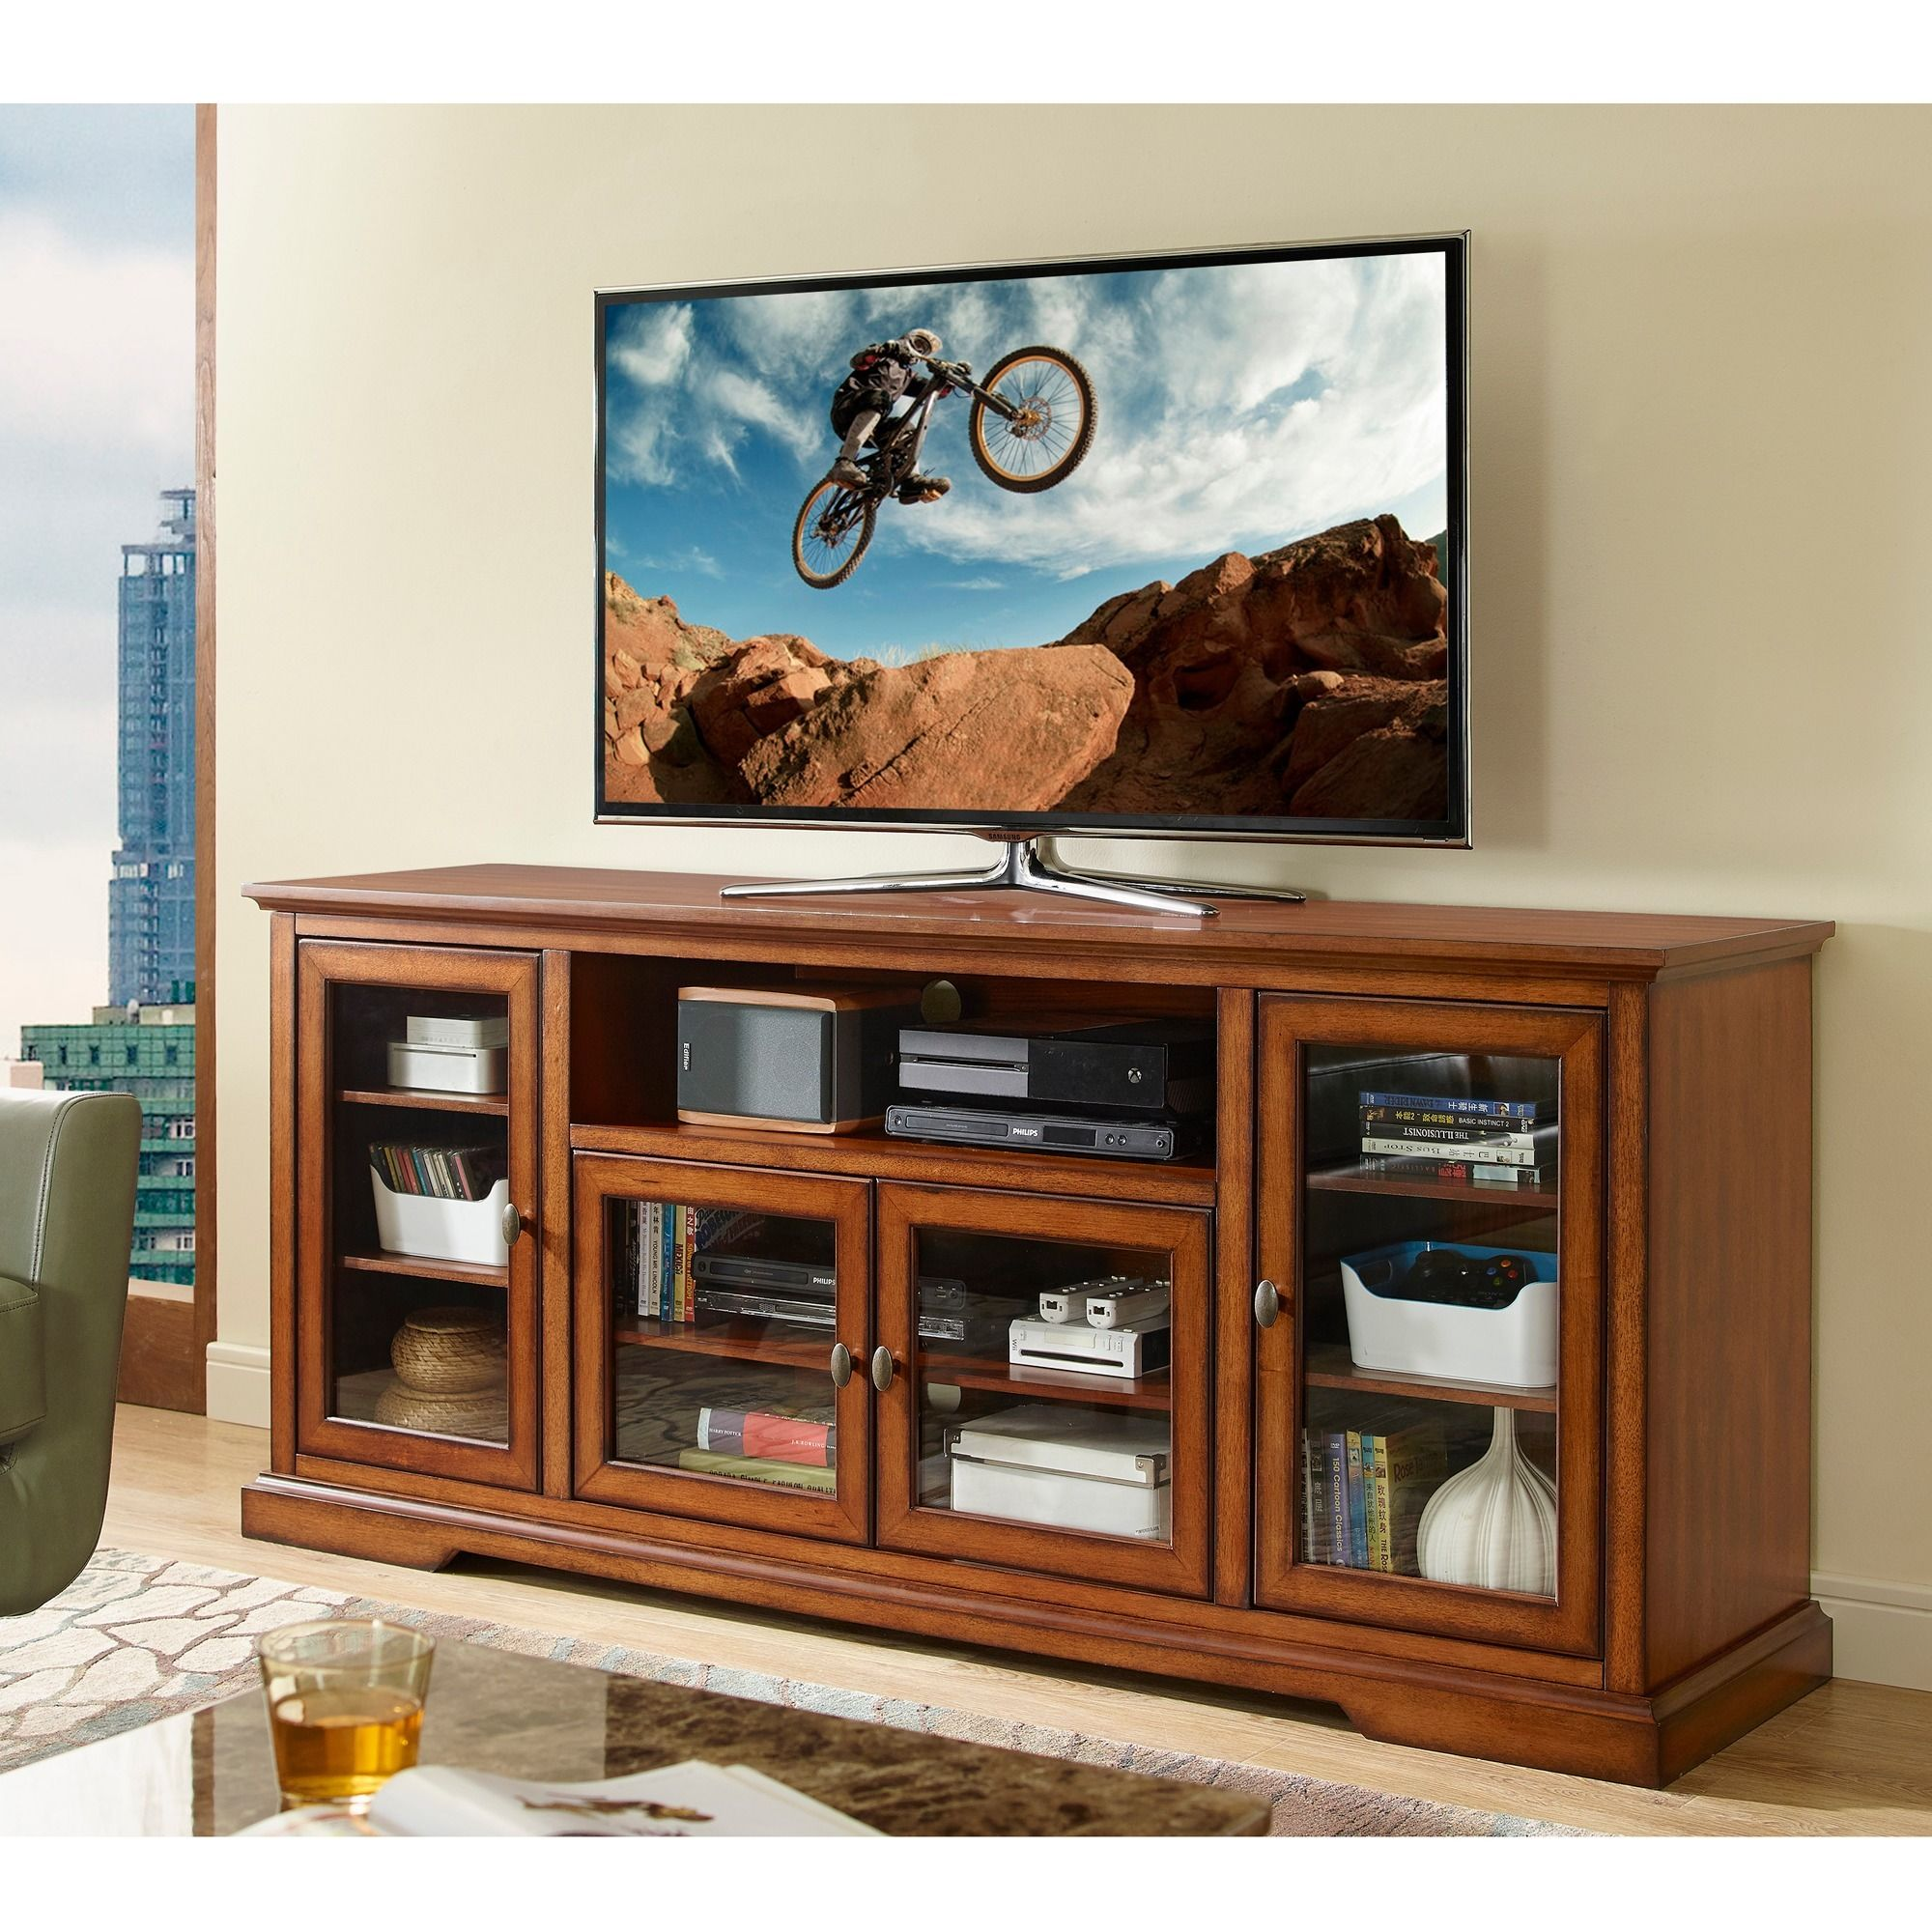 Display Your Entertaining Space In Style With This Highboy Media Stand Its Four Storage Cabinets Provide Ample Sto Tv Stand Wood Tv Stand Wood Tv Stand Rustic